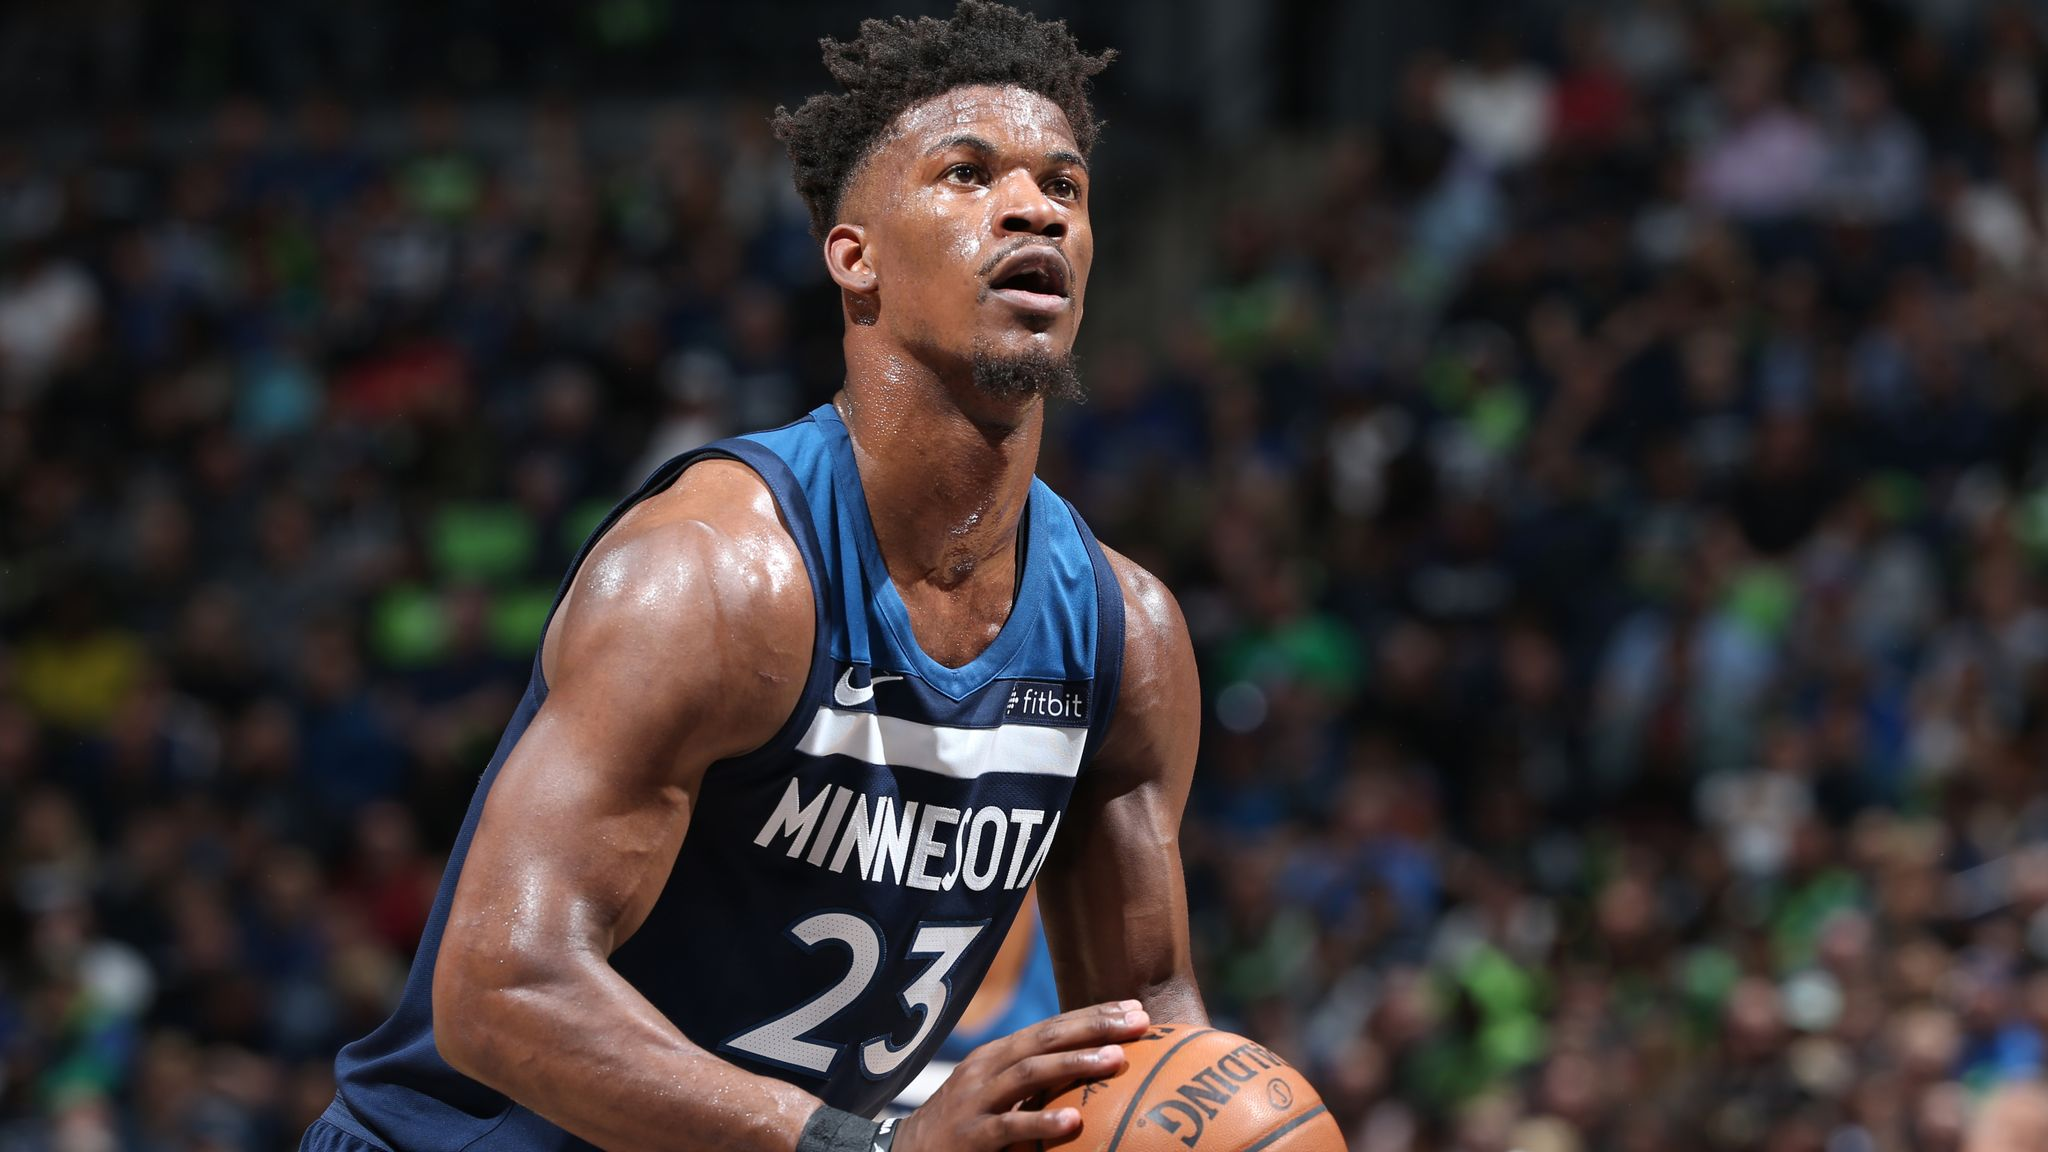 Jimmy Butler to face Minnesota Timberwolves fans after trade request